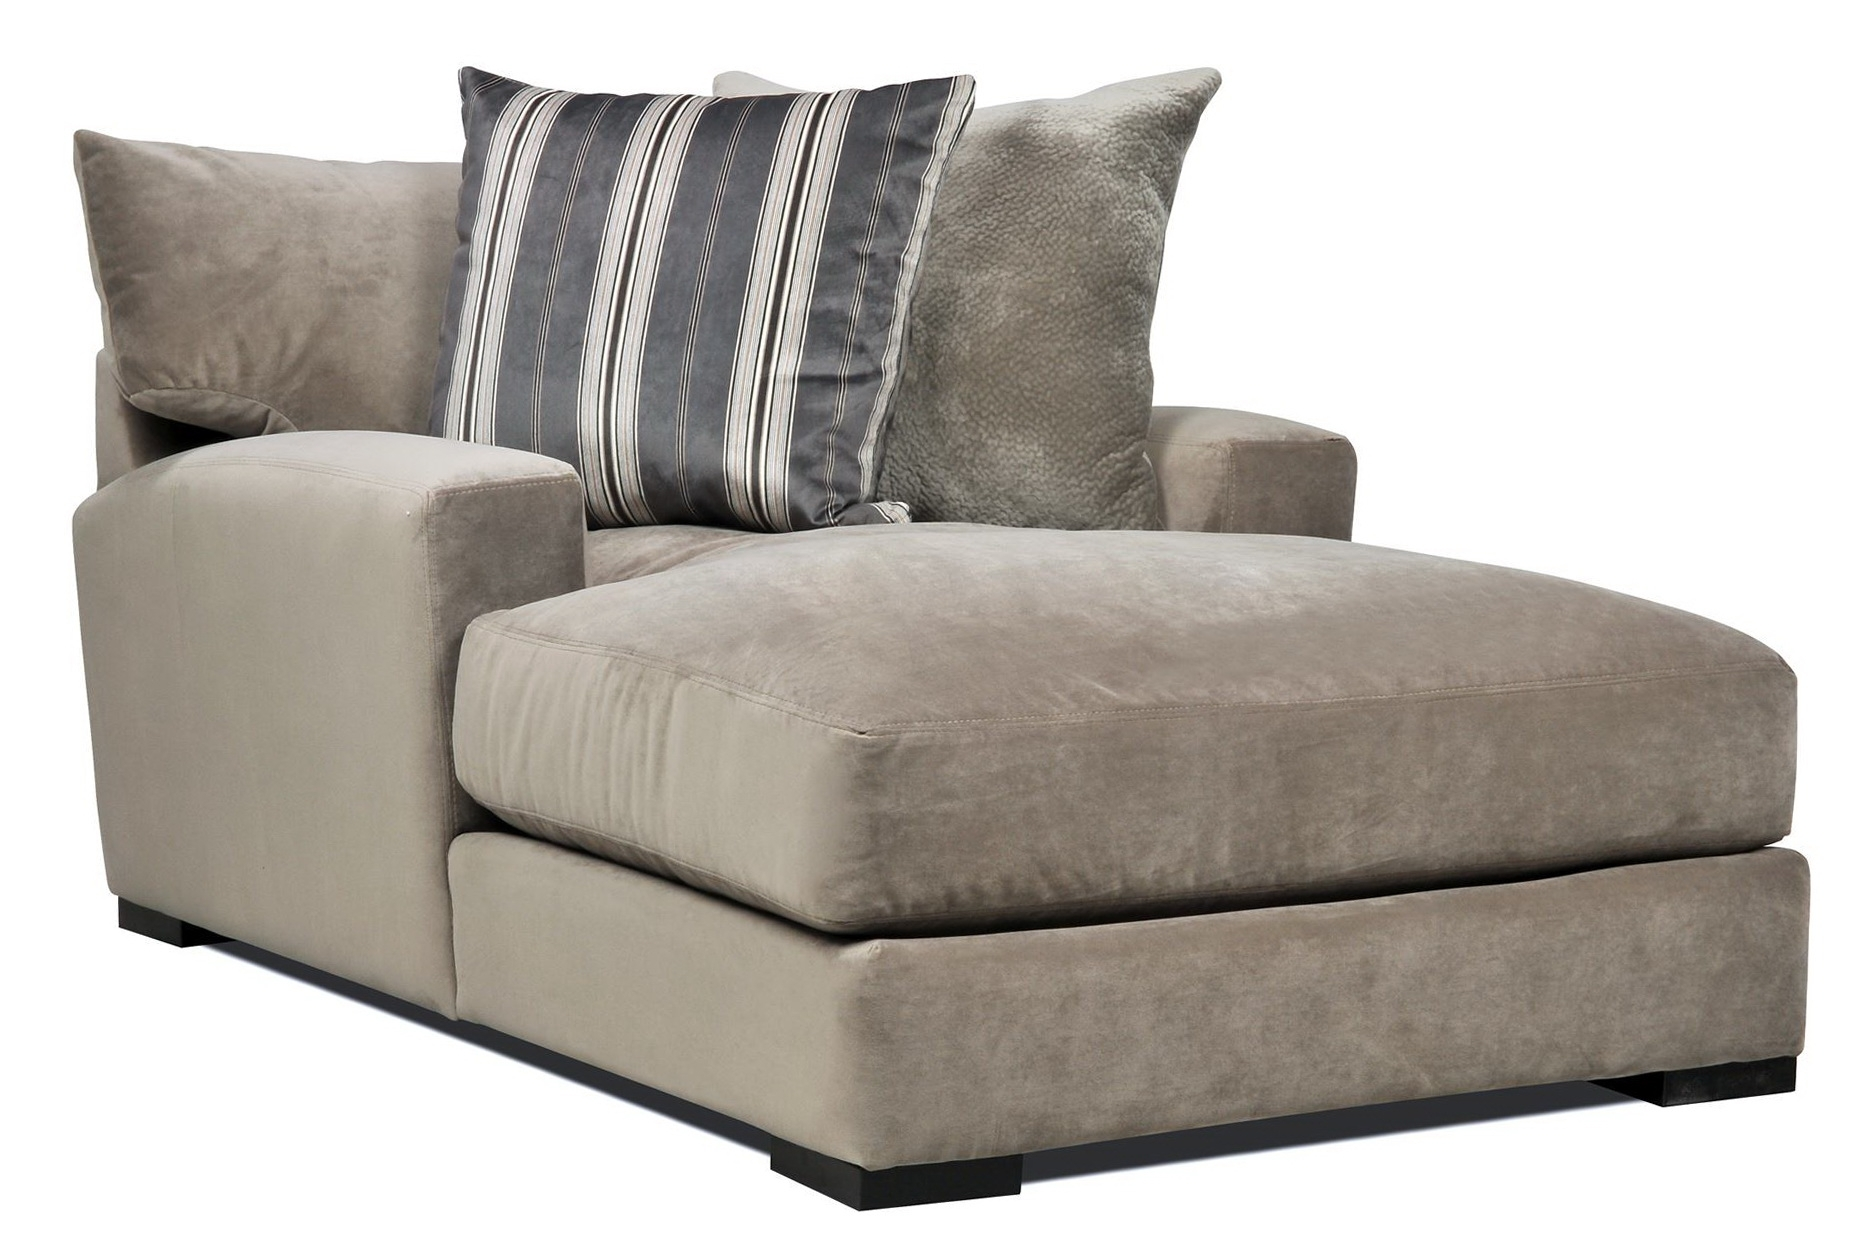 Most Recent Double Wide Chaise Lounge Indoor With 2 Cushions (View 2 of 15)